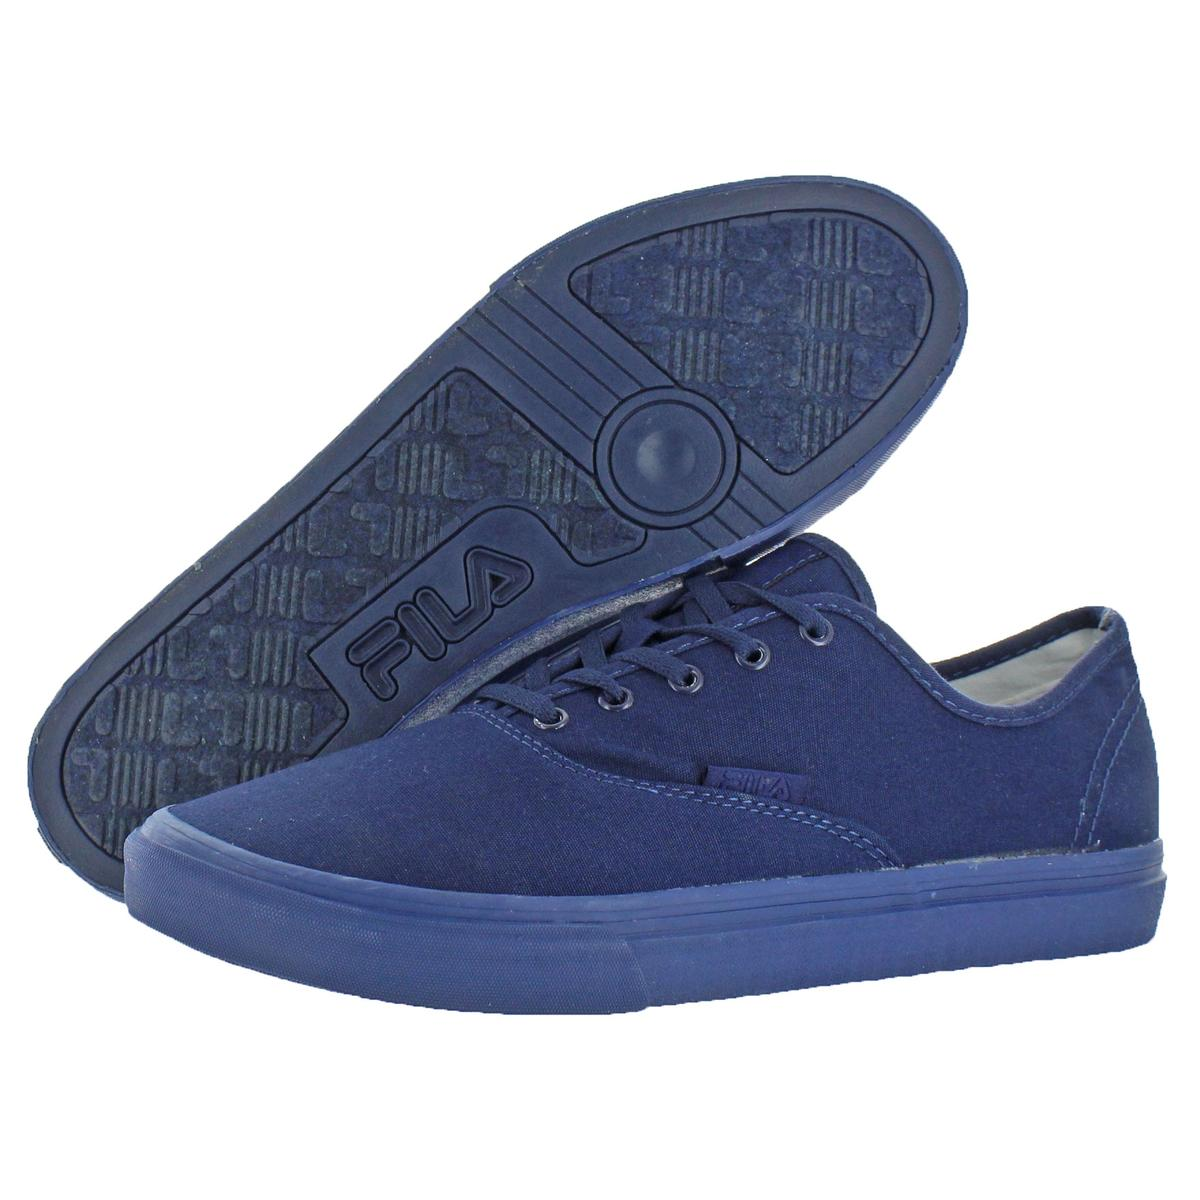 Fila-Classic-Canvas-Men-039-s-Fashion-Skate-Sneakers-Shoes thumbnail 4